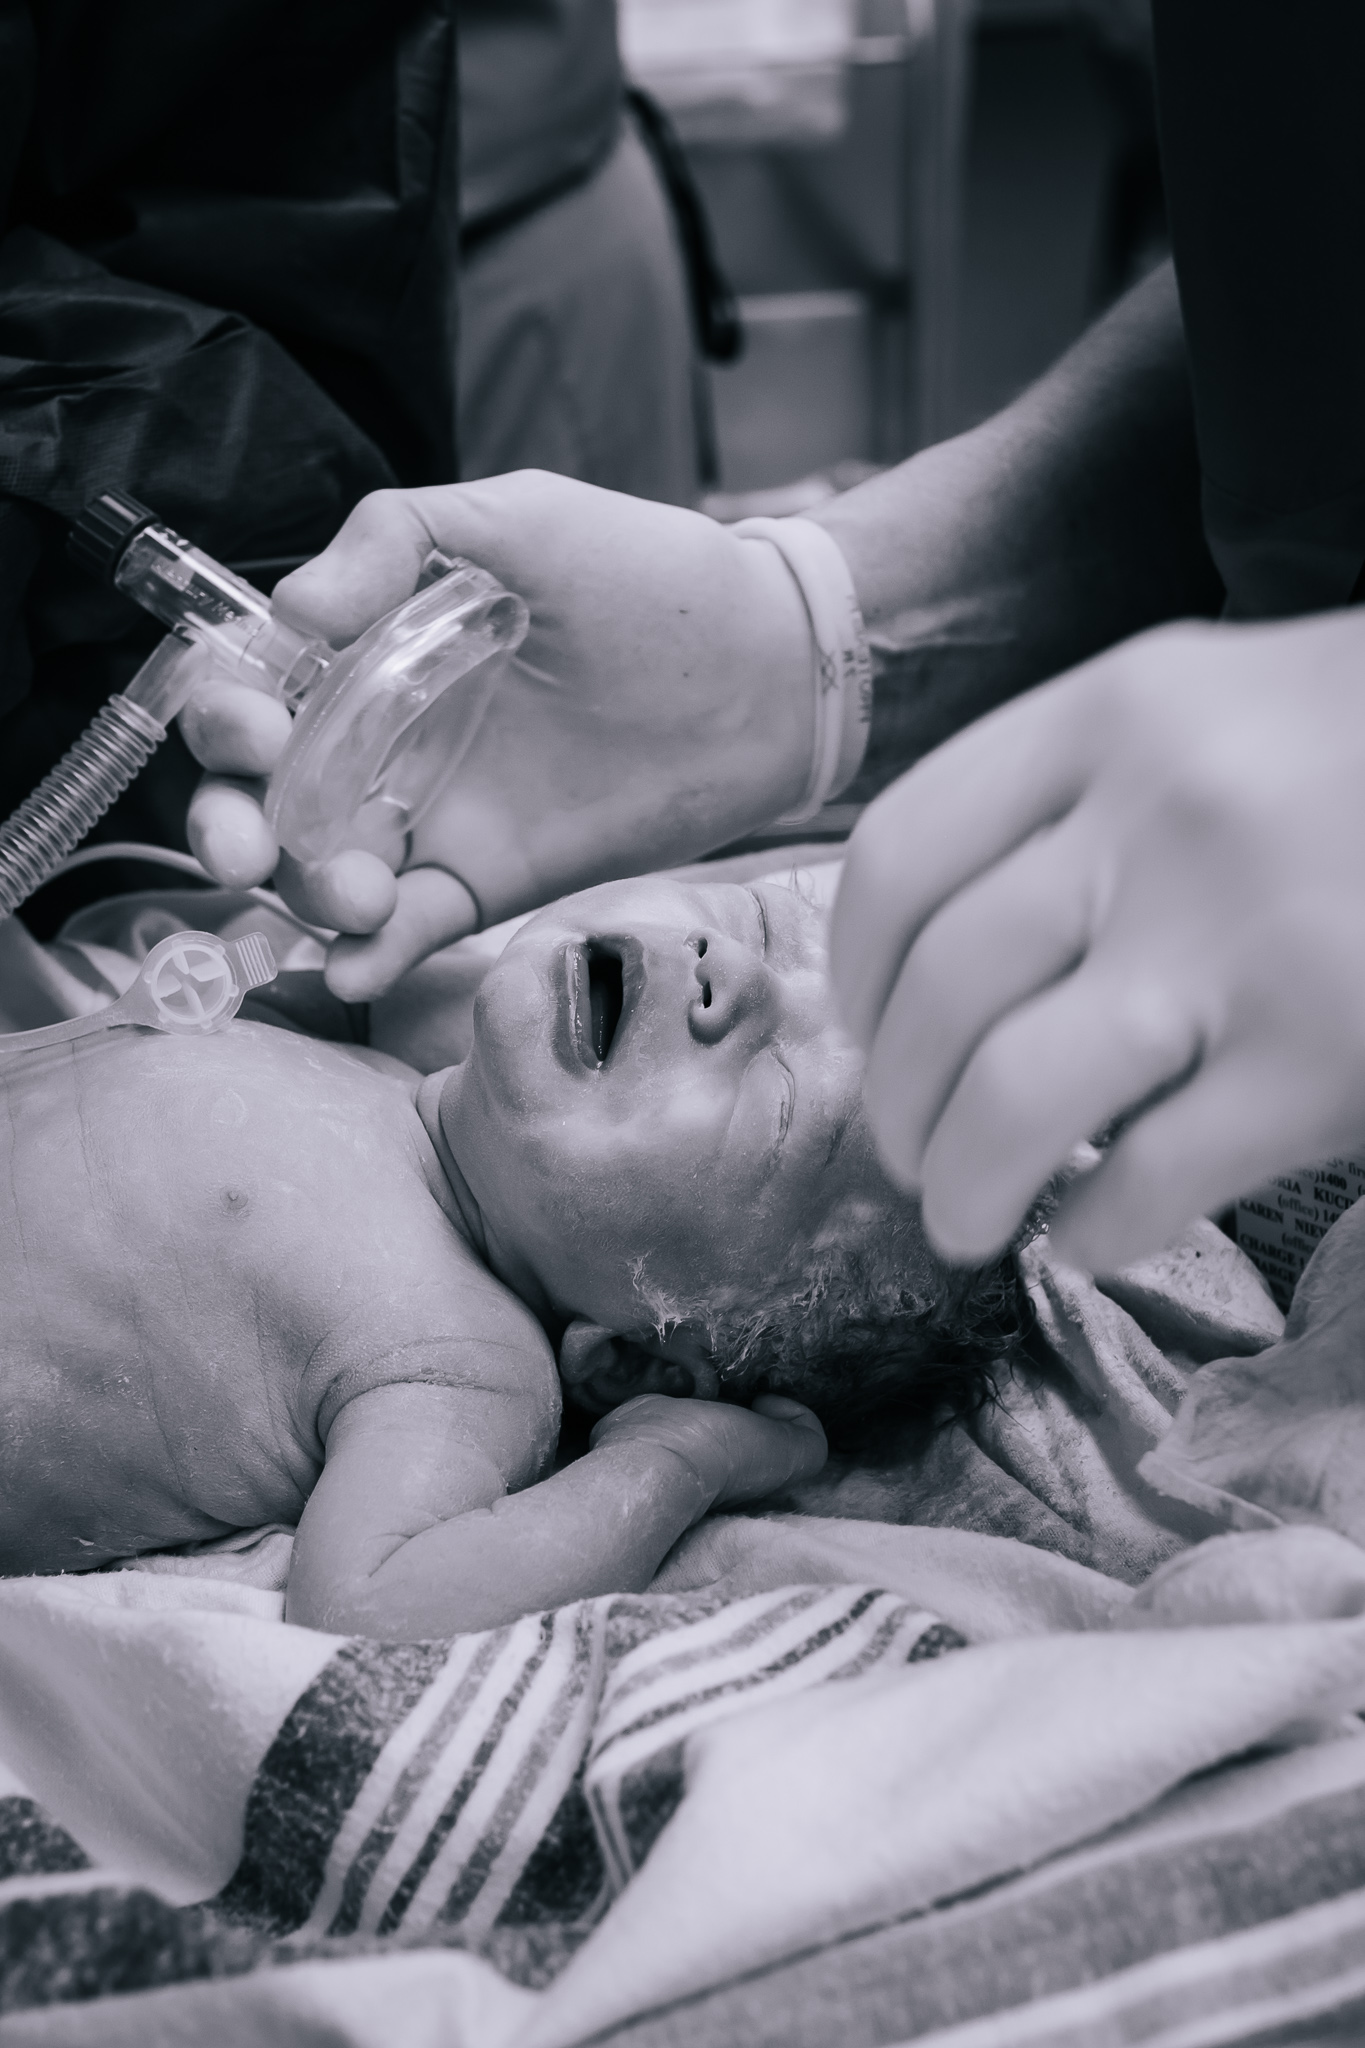 A newborn with an oxygen mask and NICU nurses.